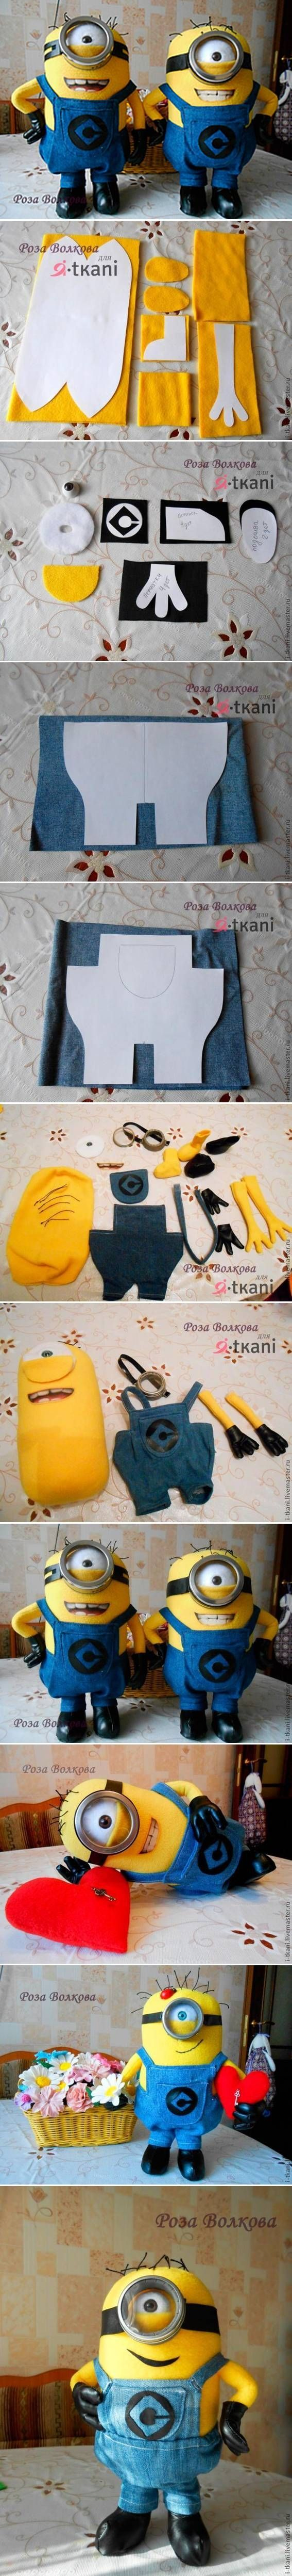 DIY Minion Dolls DIY Minion Dolls by diyforever